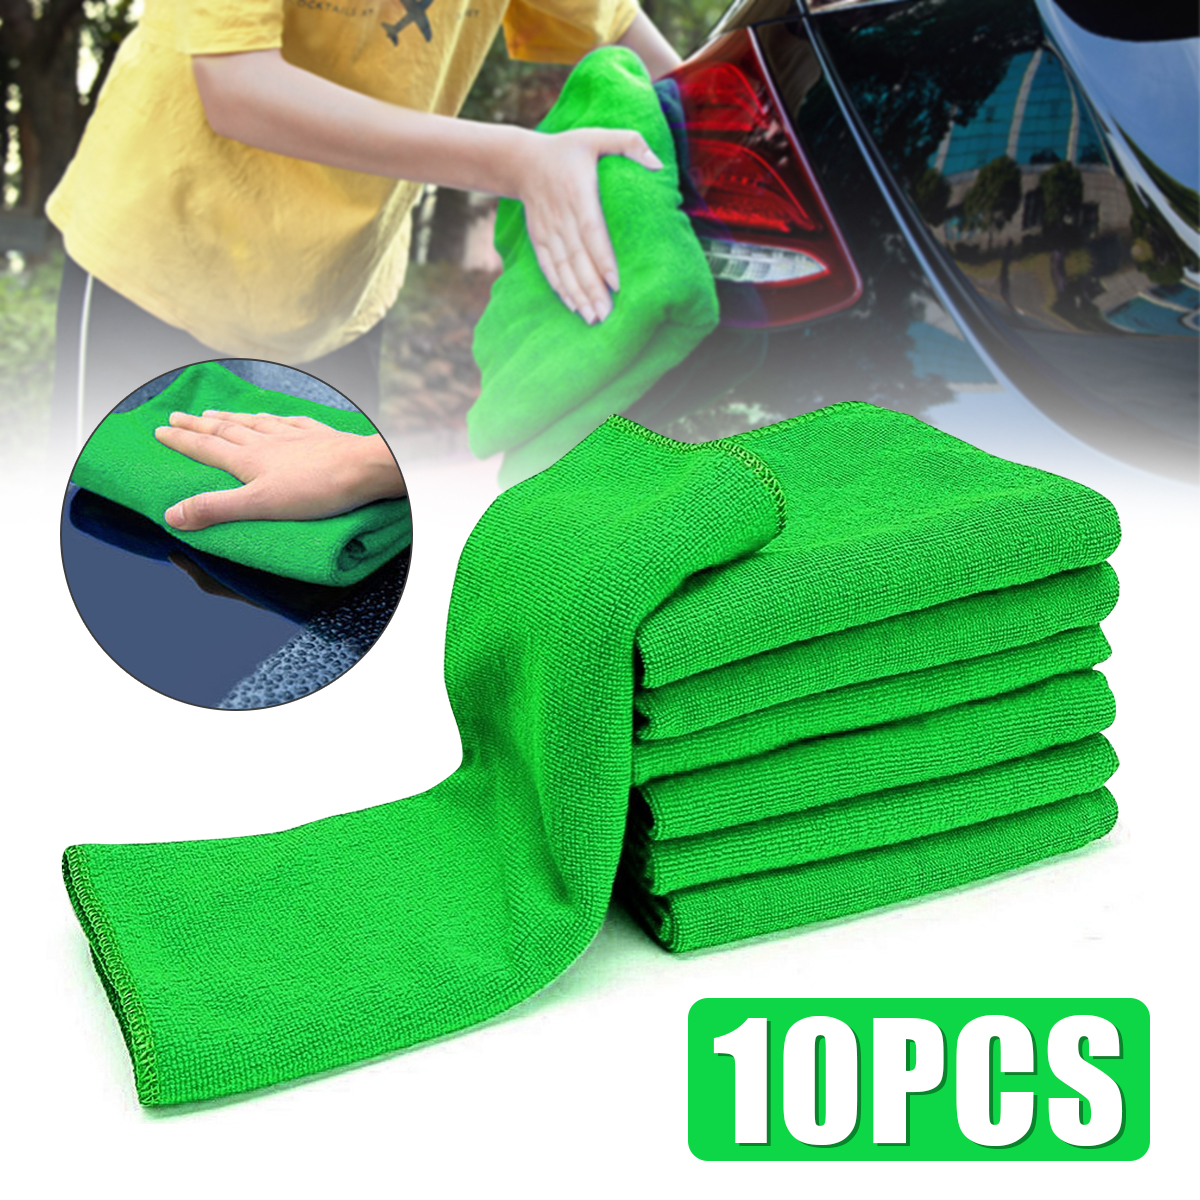 10Pcs Micro Fiber Cleaning Cloths Green Auto Car Care Detailing Microfiber Auto Duster Towel Wipes Cleaning Supplies